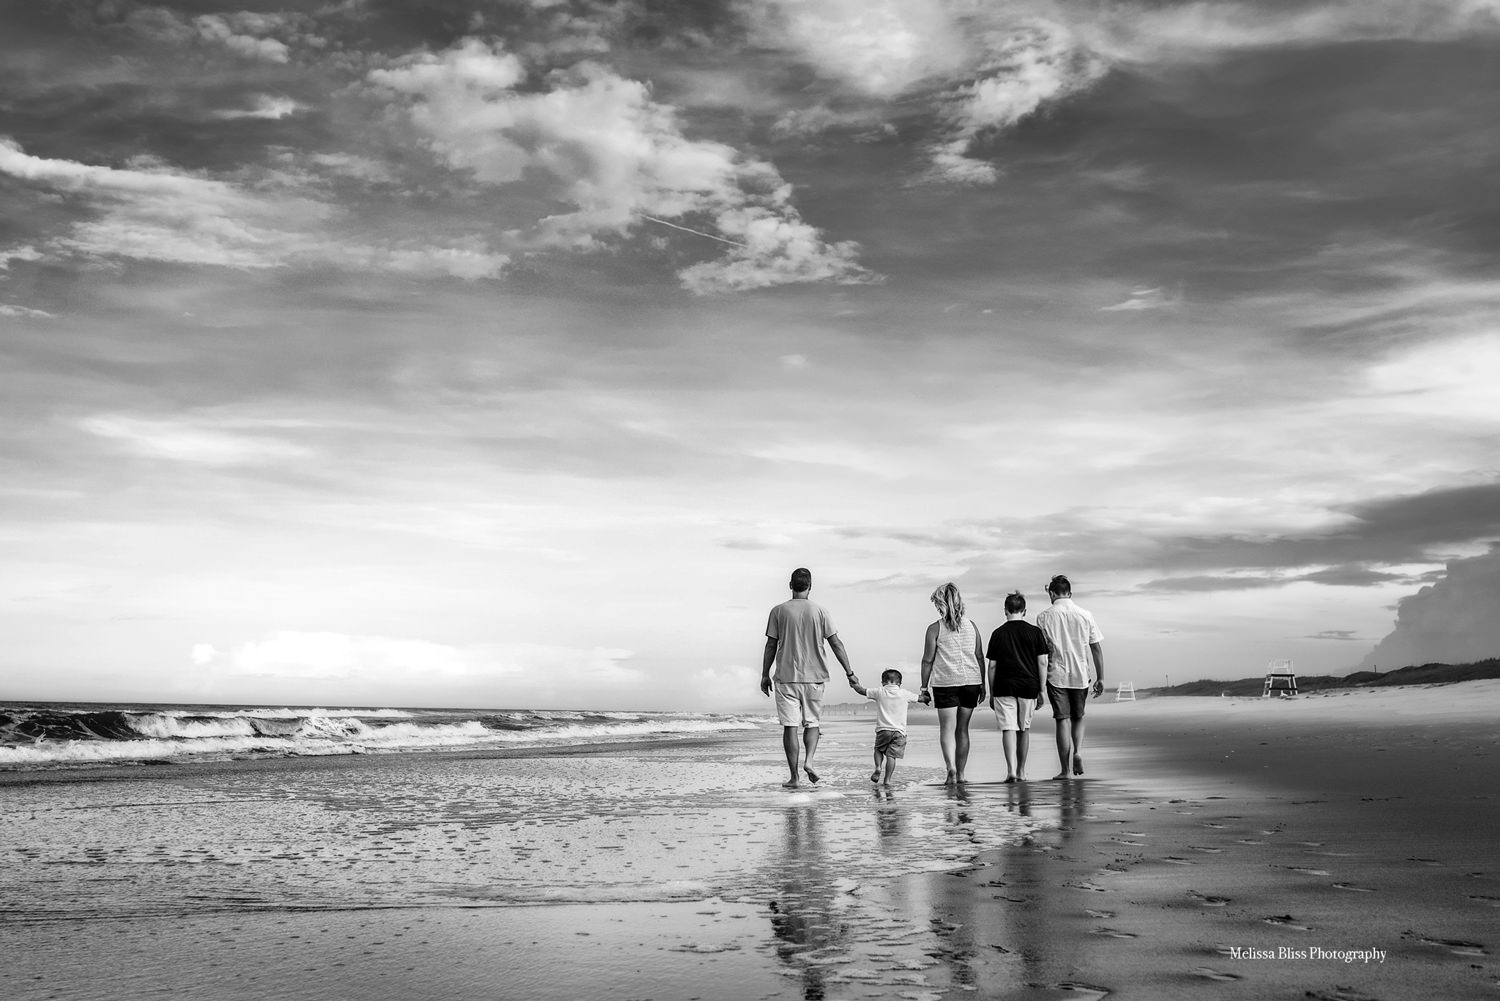 virginia-beach's-premiere-family-photographer-melissa-bliss-photography-best-beach-photos-sandbridge-va.jpg